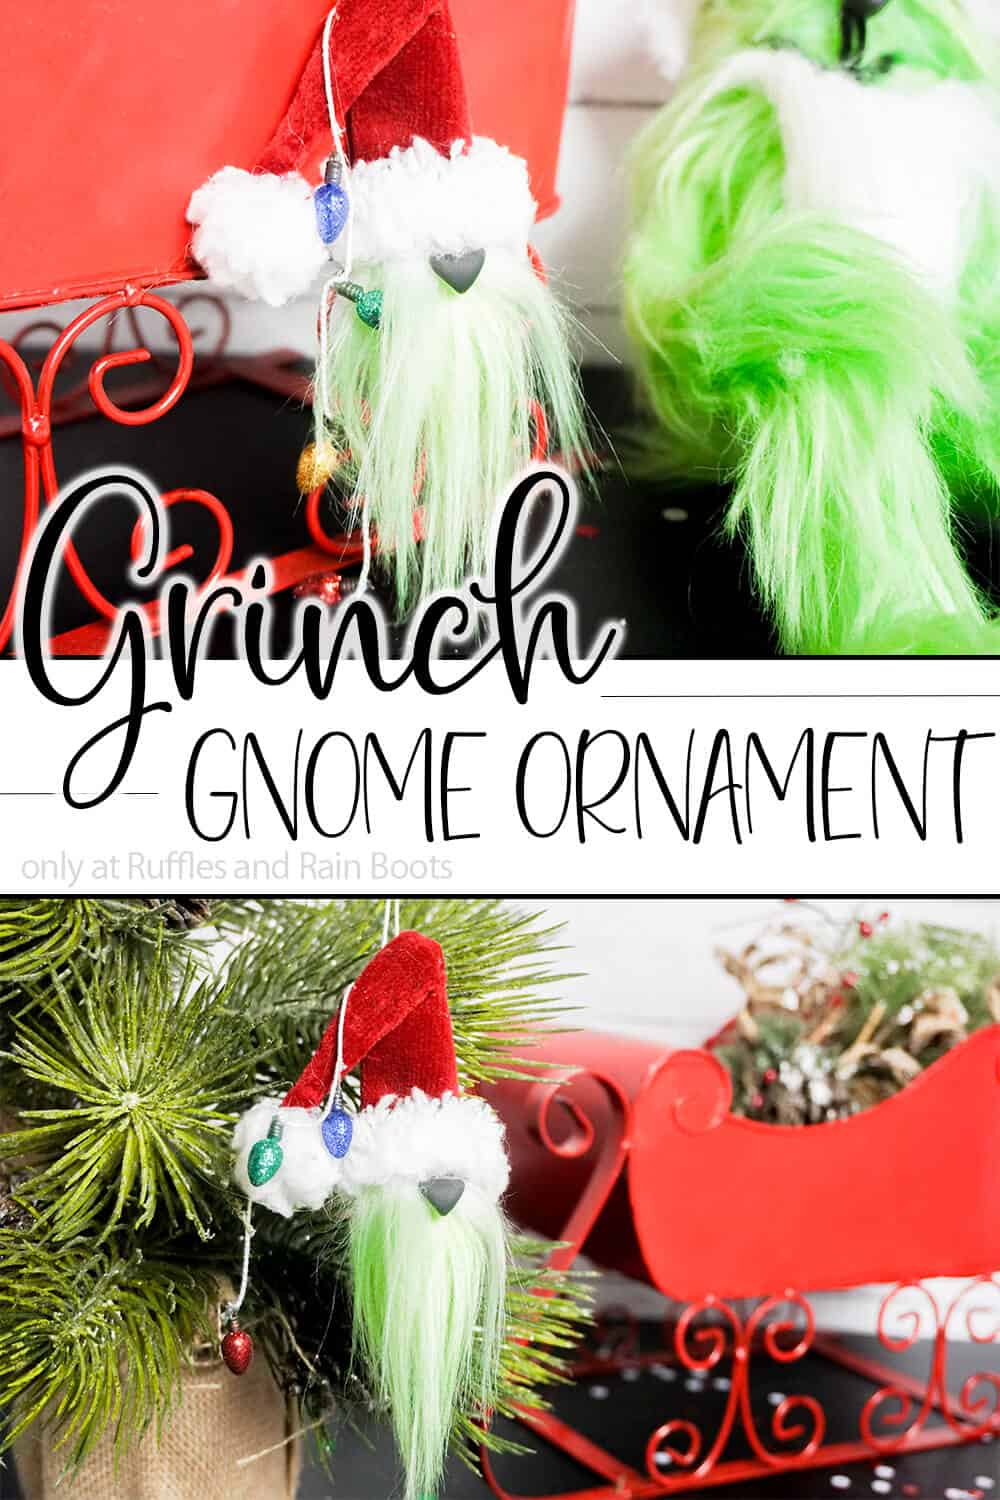 photo collage of grinch who stole christmas ornament with text which reads grinch gnome ornament